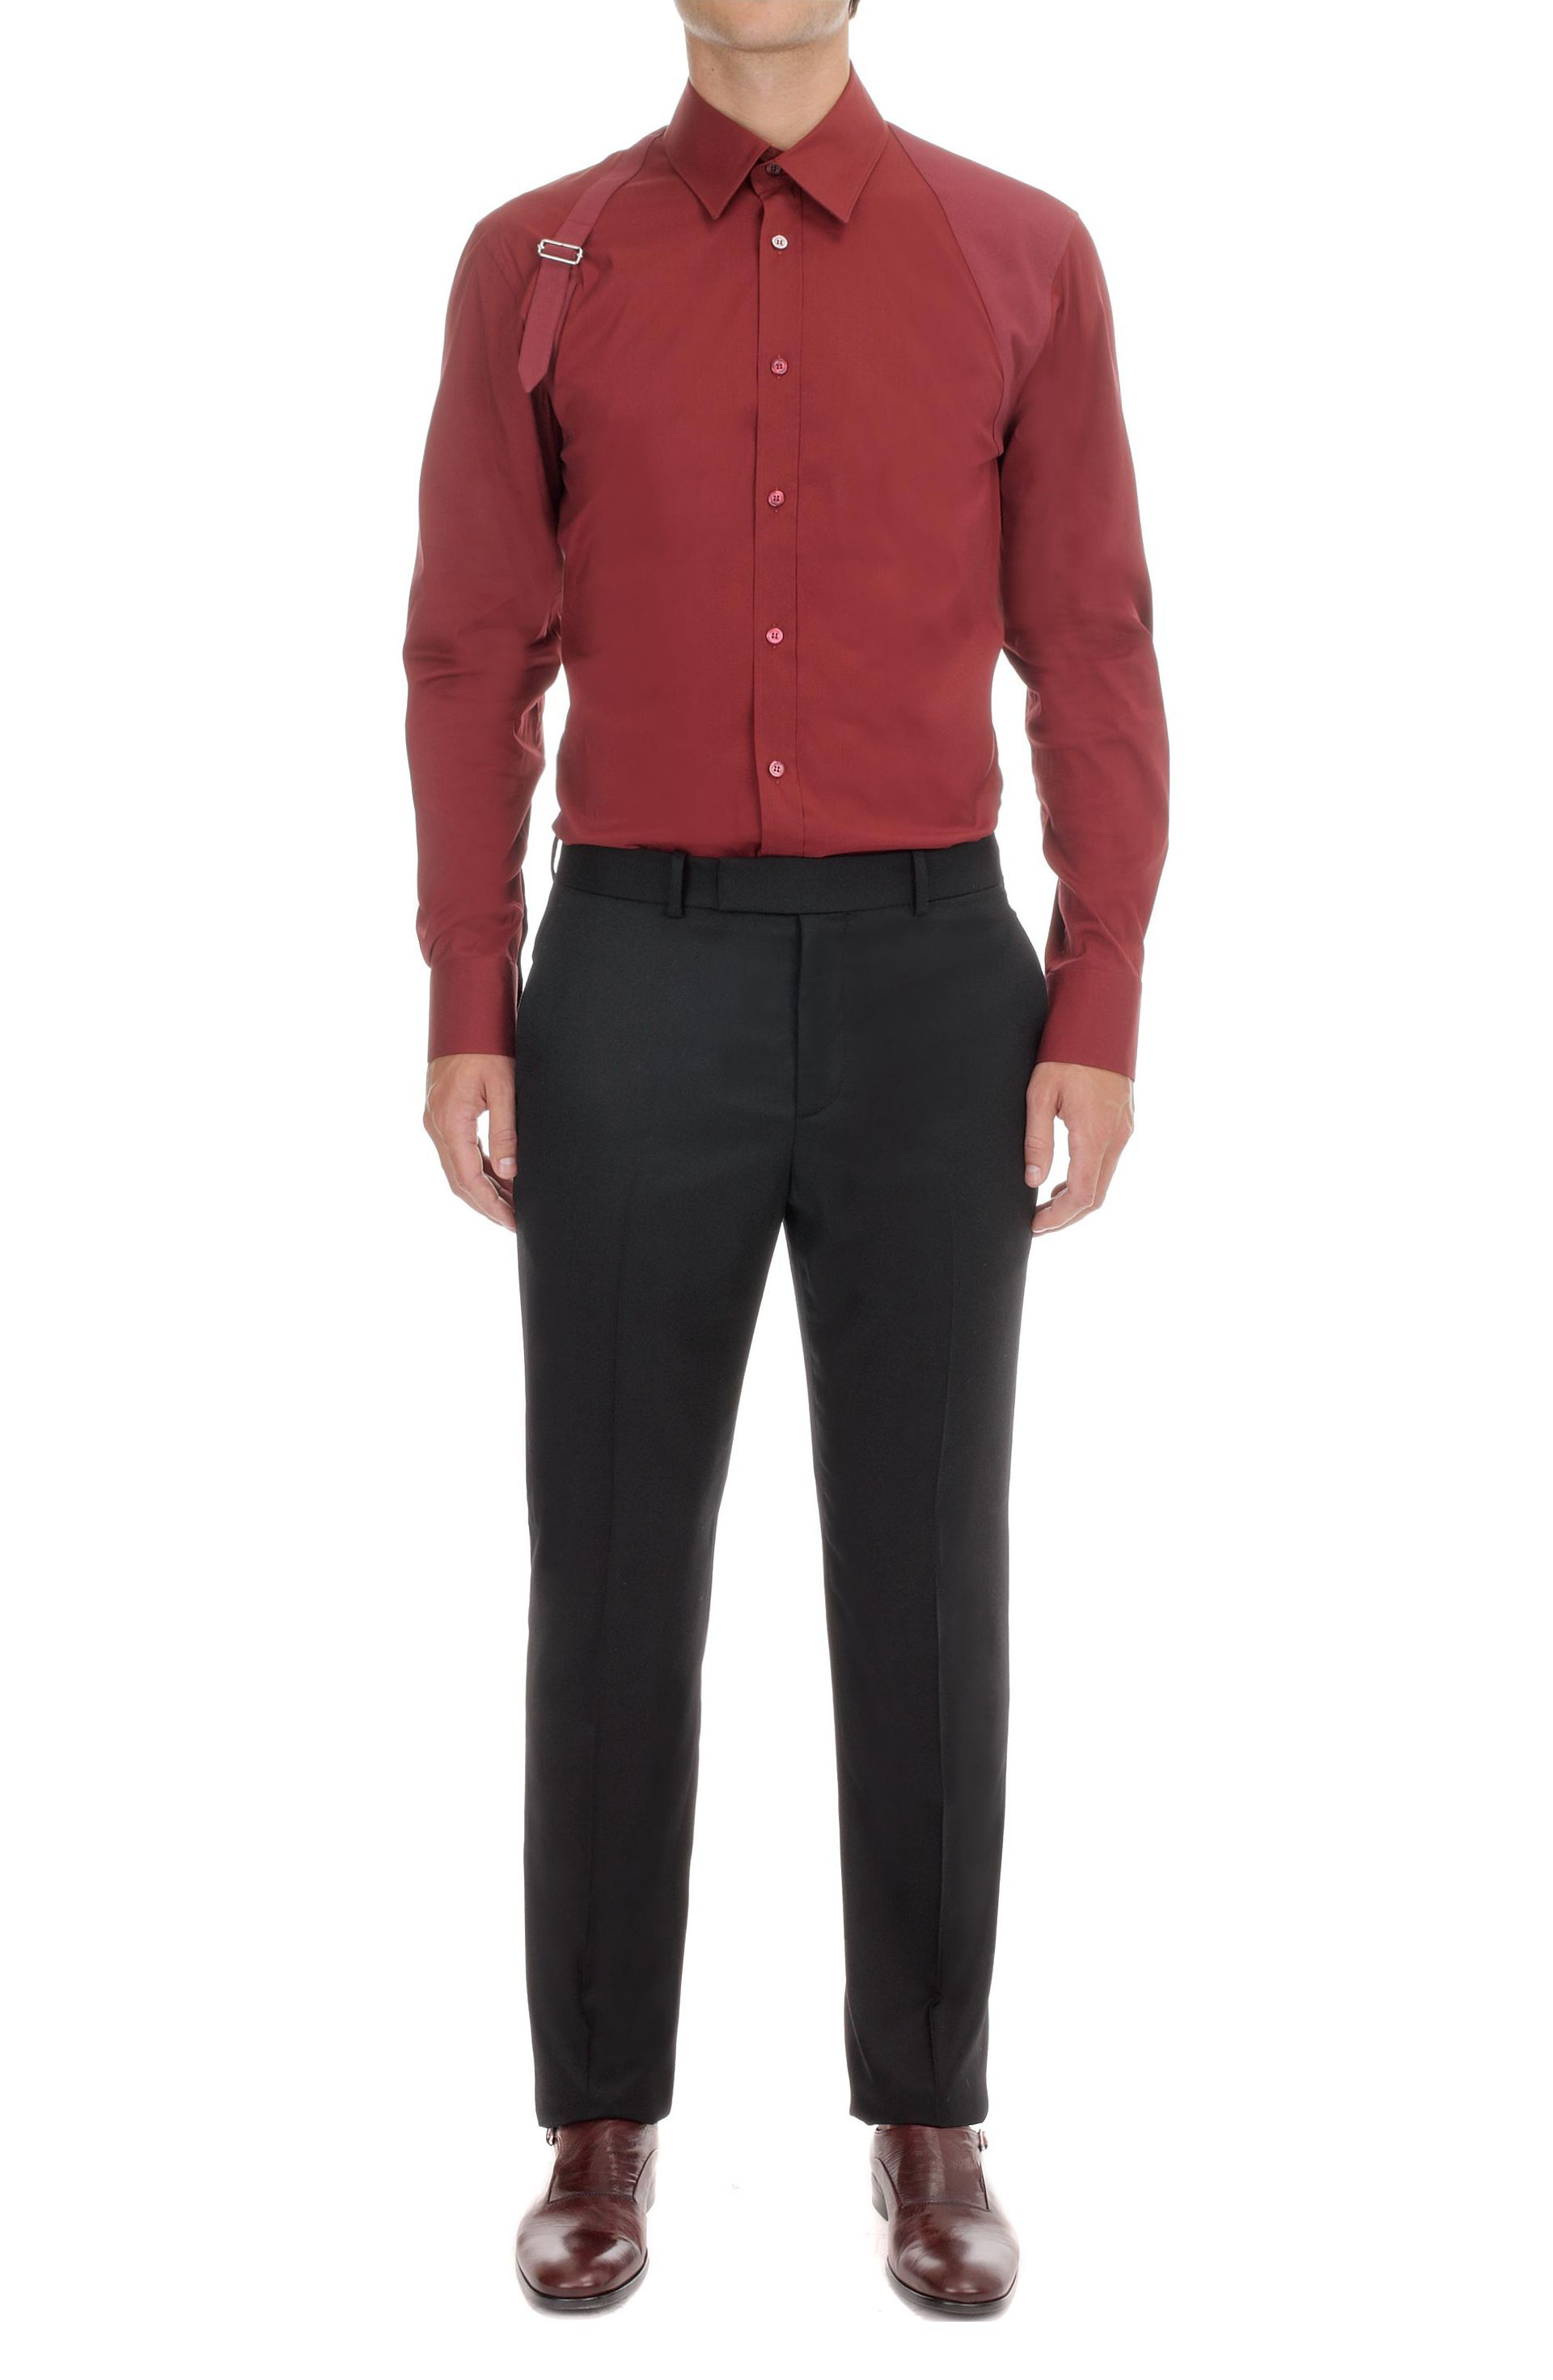 Alexander McQueen Bordeaux Harness Shirt